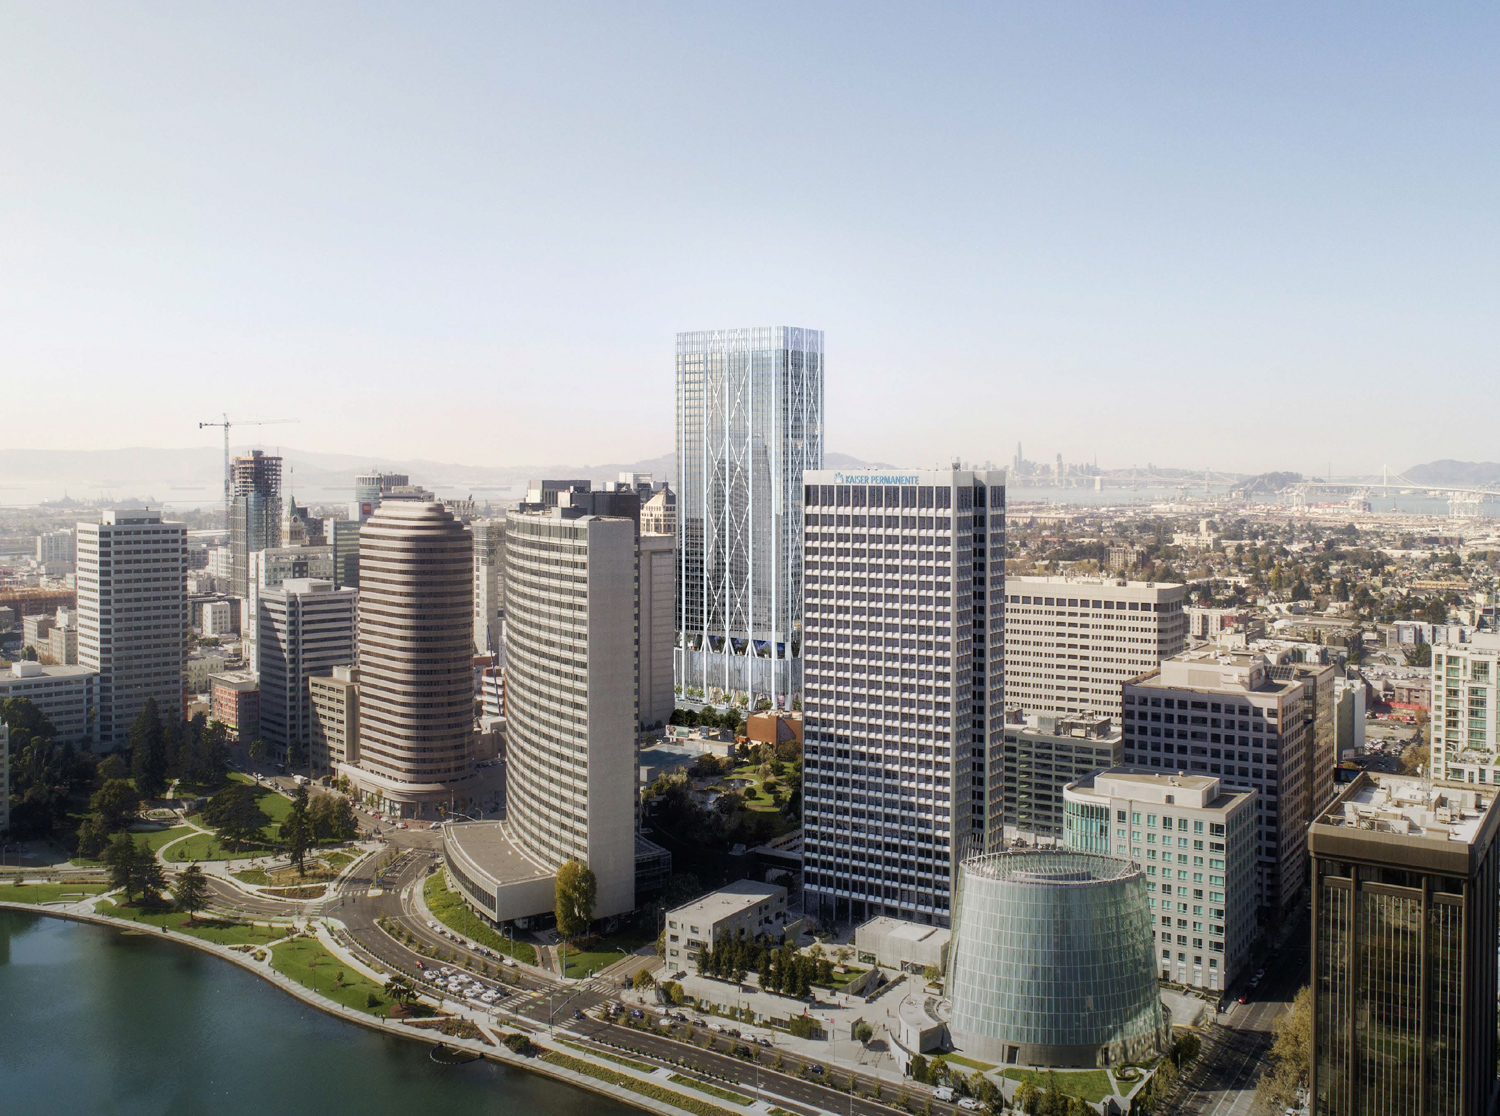 415 20th Street situated in the existing Oakland skyline, design by Pickard Chilton